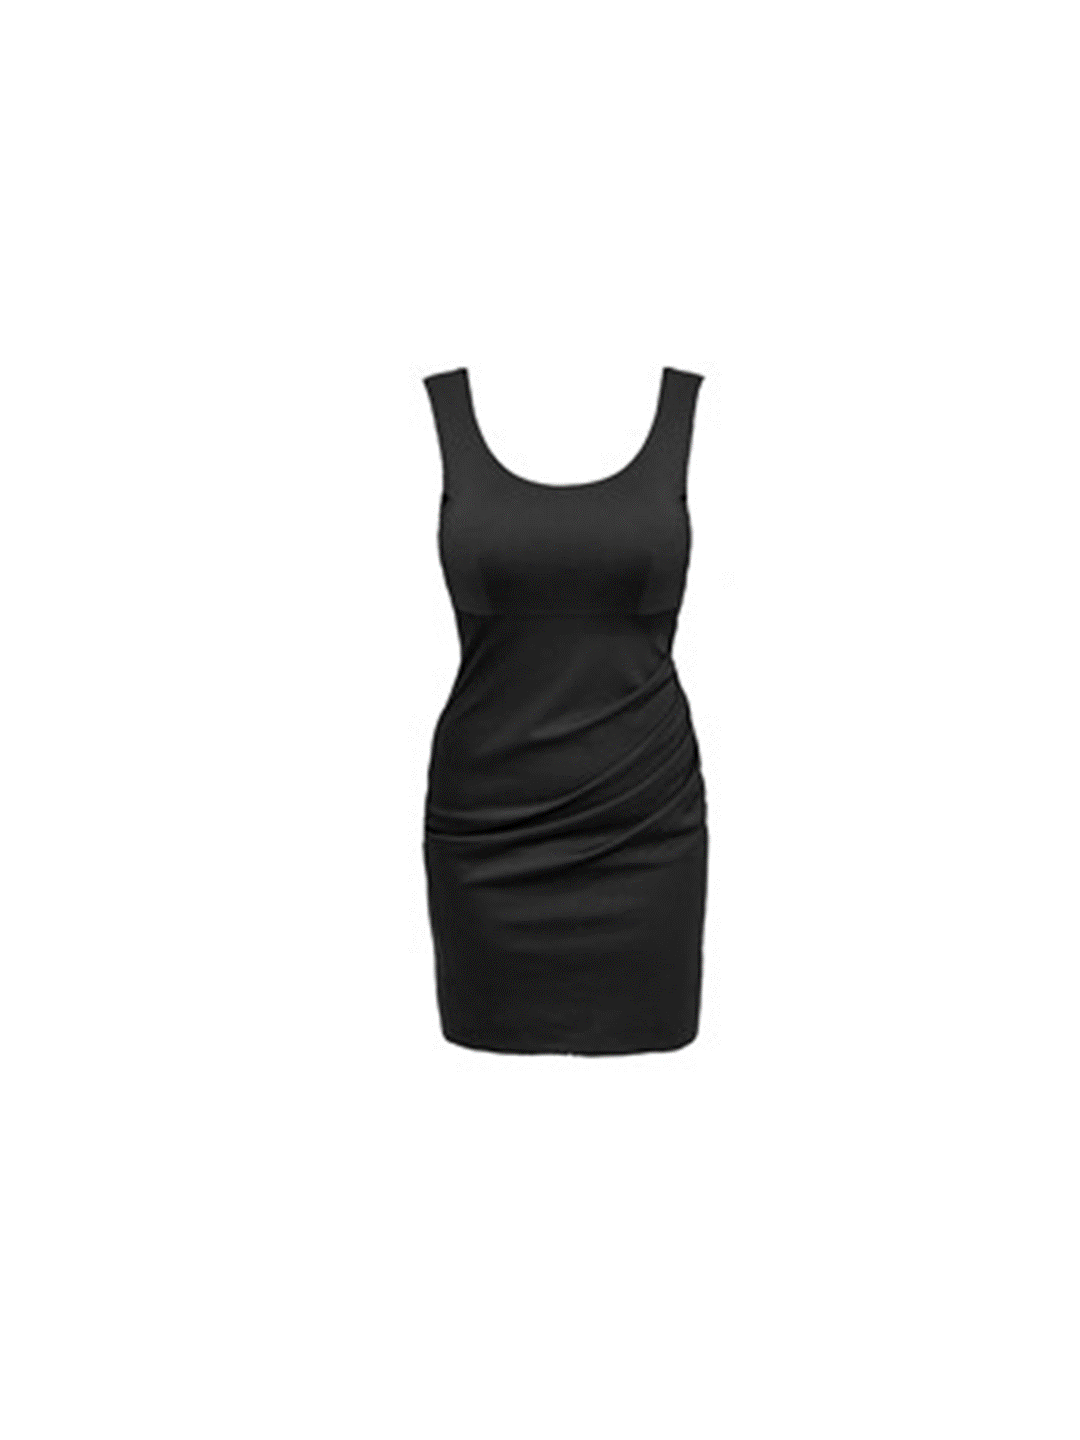 SCULPTURA Electra [Sculpt-It-Your-Way] Shapewear Dress (Front View)